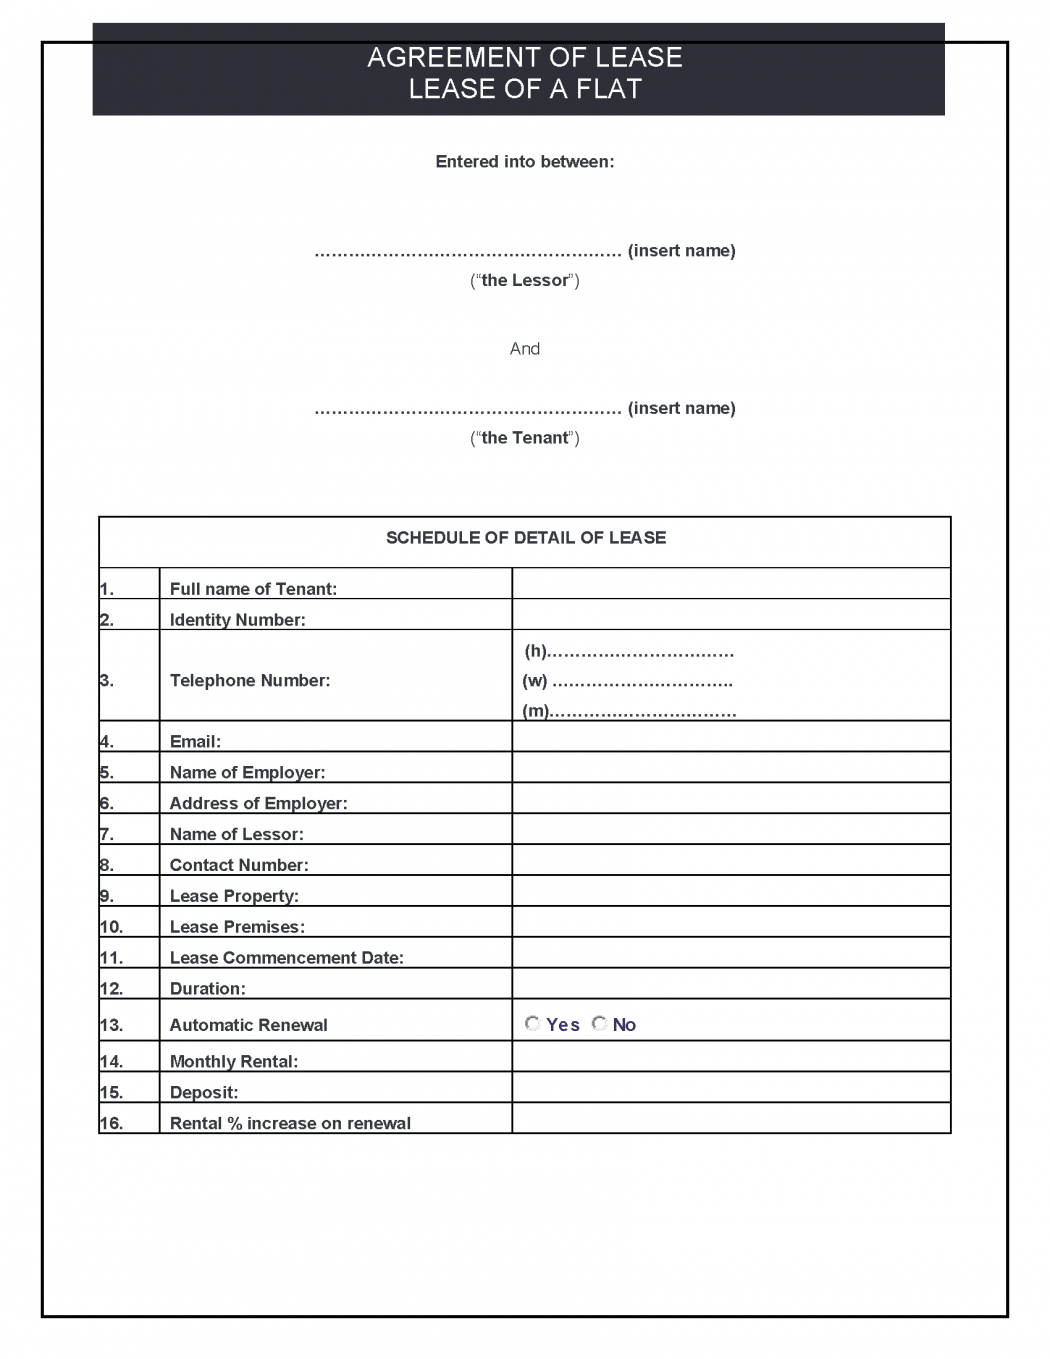 Lease Agreement (Residential) Precedent